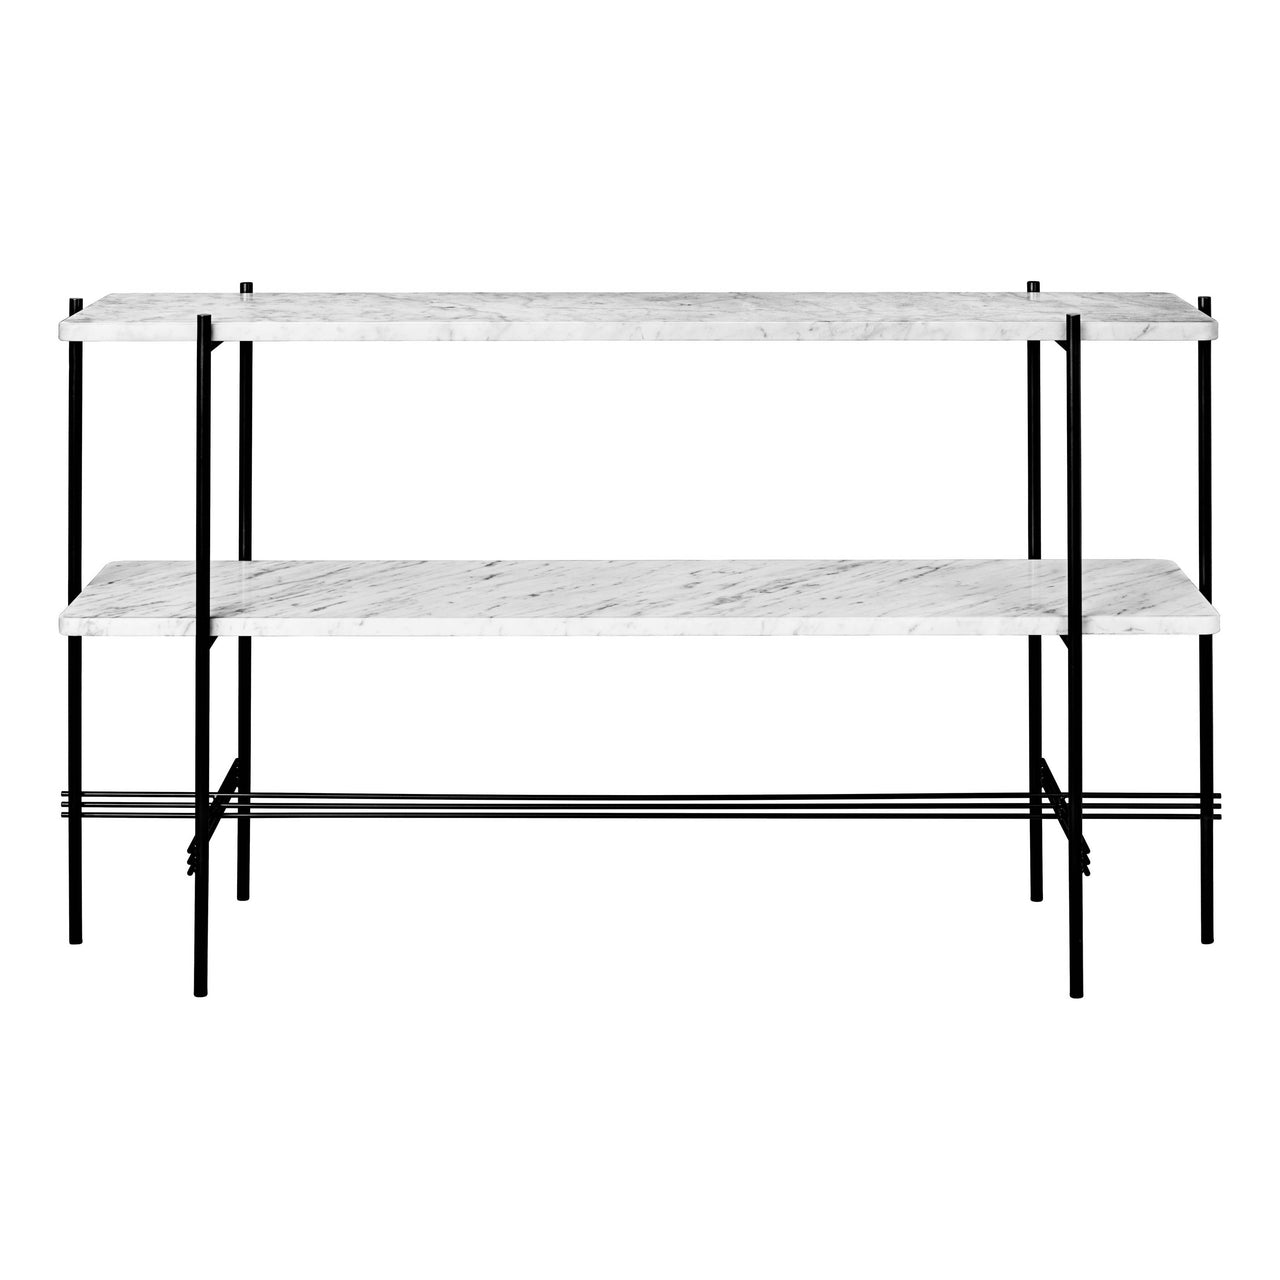 TS Console: 2 Racks + Black Base + White Cararra Marble